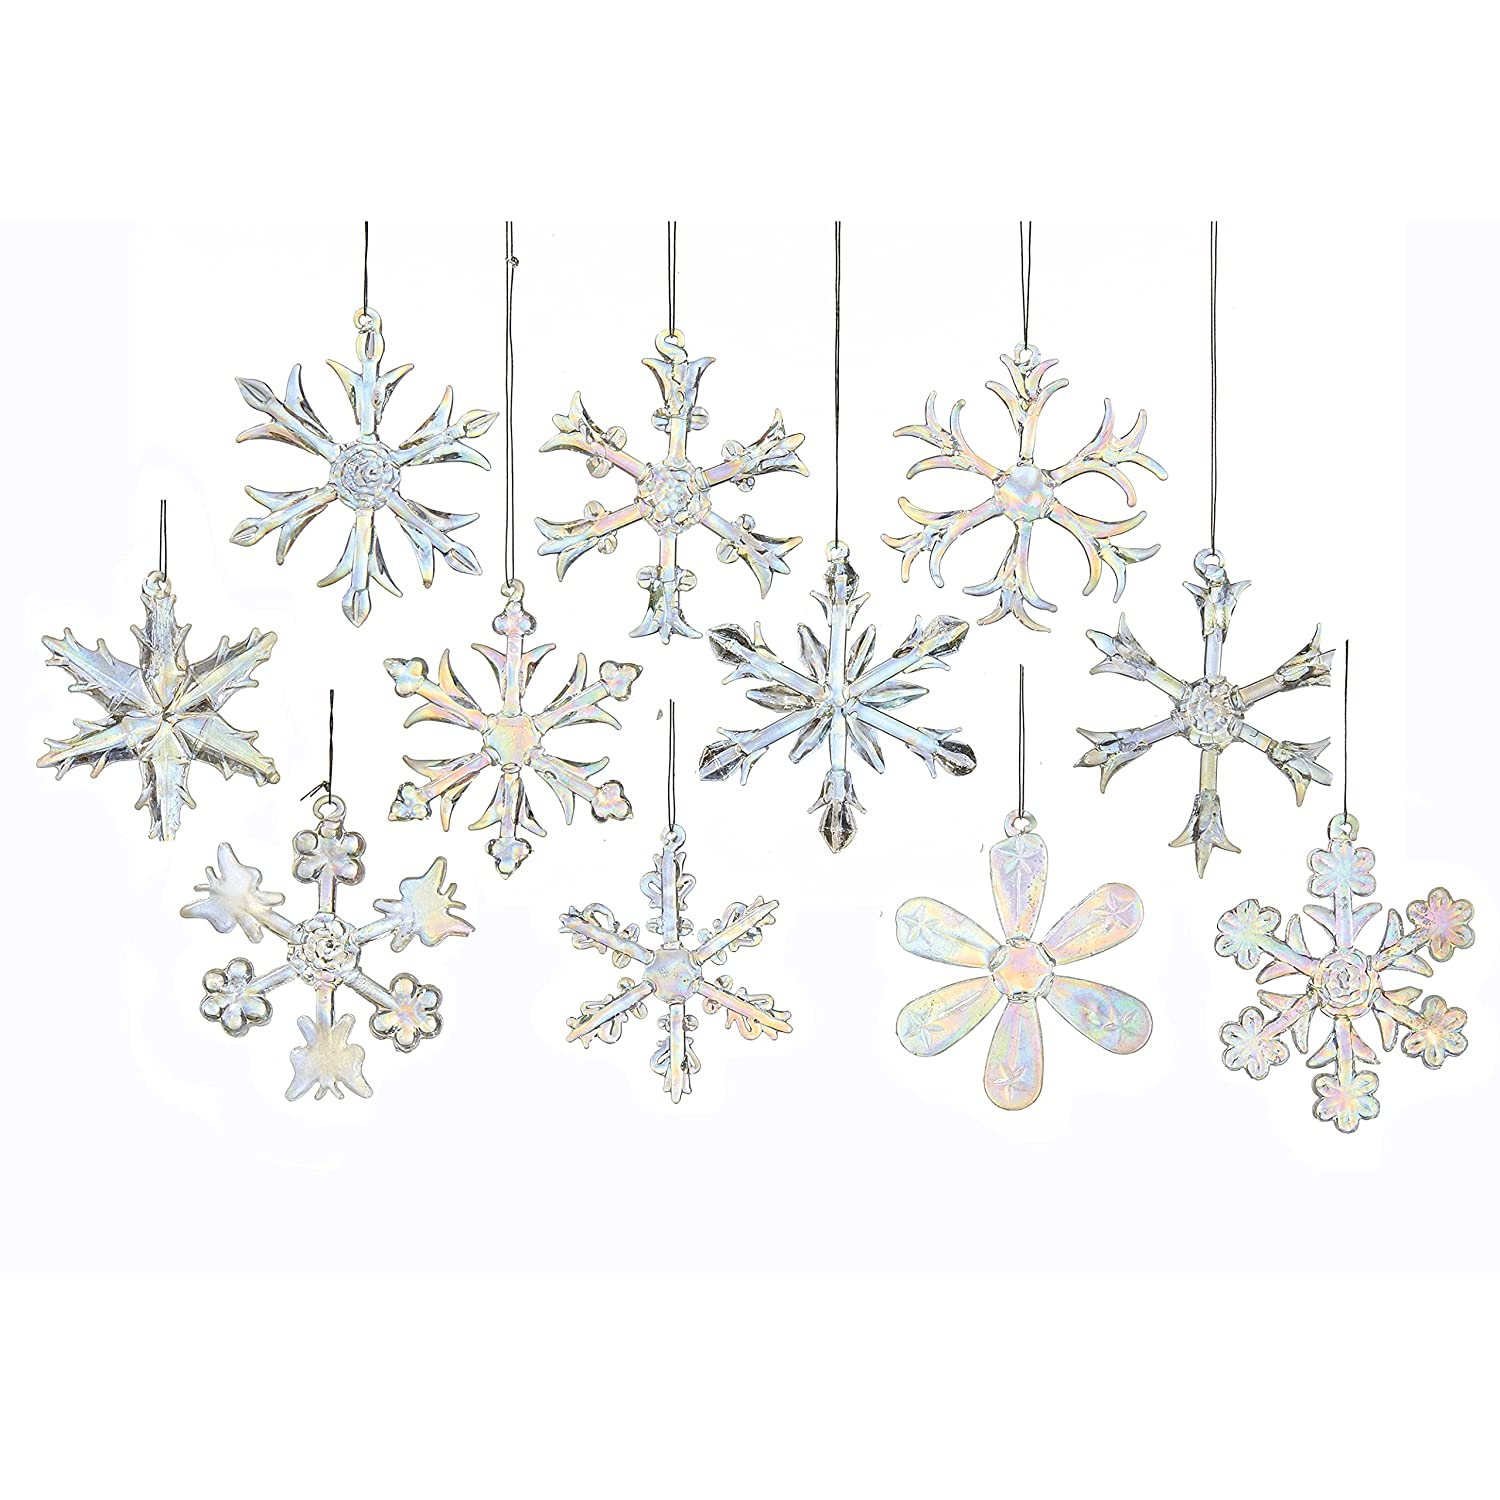 Iridescent Glass Snowflake Ornaments Set of 12 | ChristmasTablescapeDecor.com